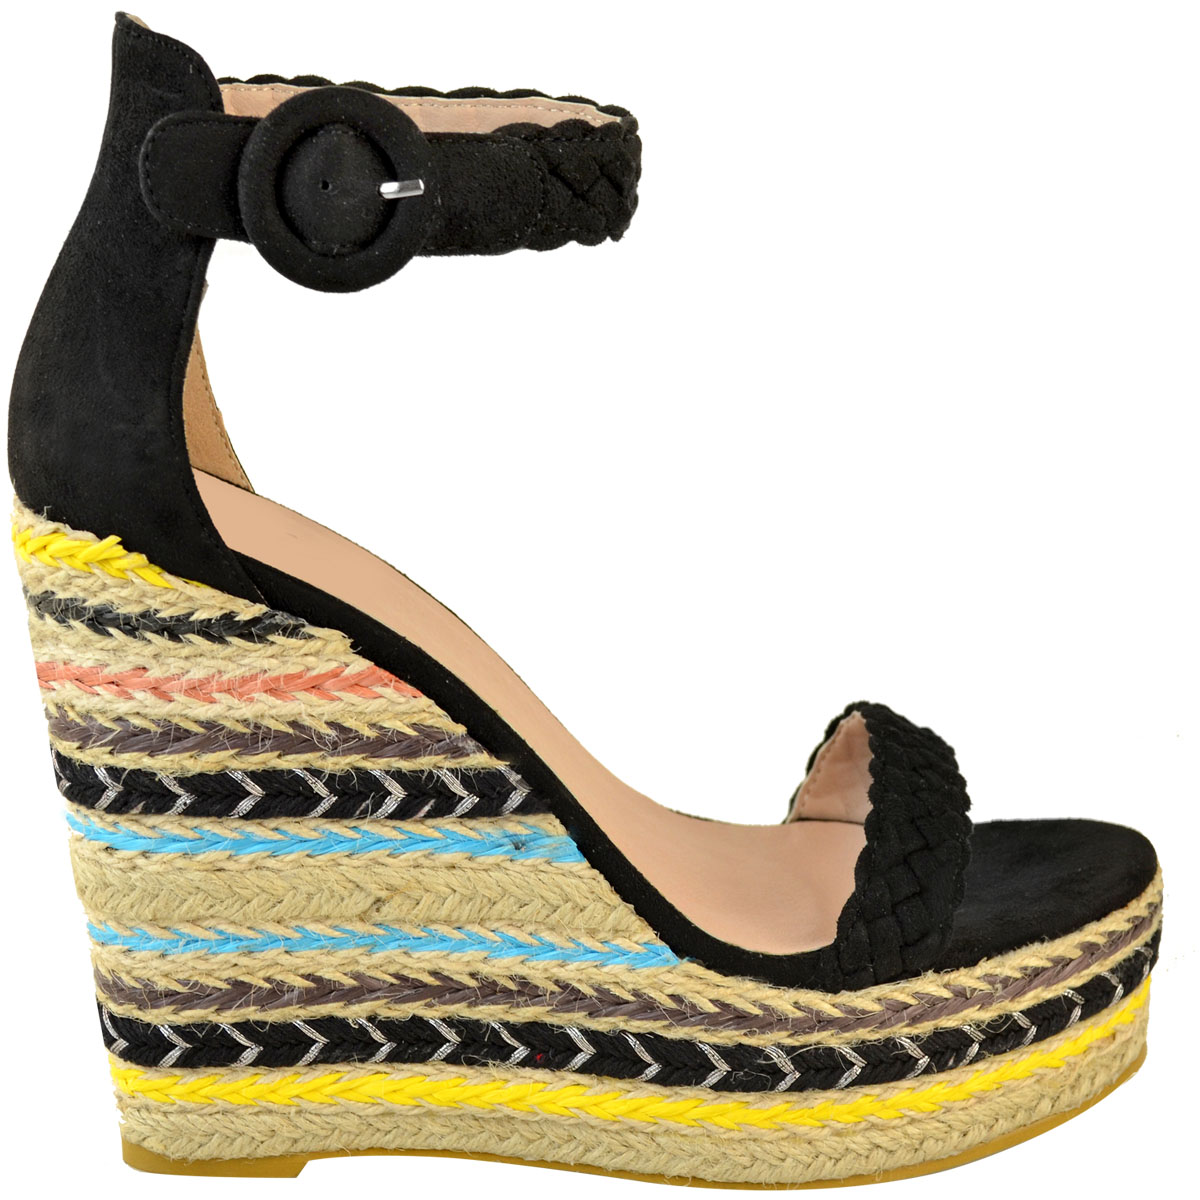 Womens-Ladies-Black-Wedge-Platforms-Sandals-High-Heels-Party-Summer-Shoes-Size thumbnail 4